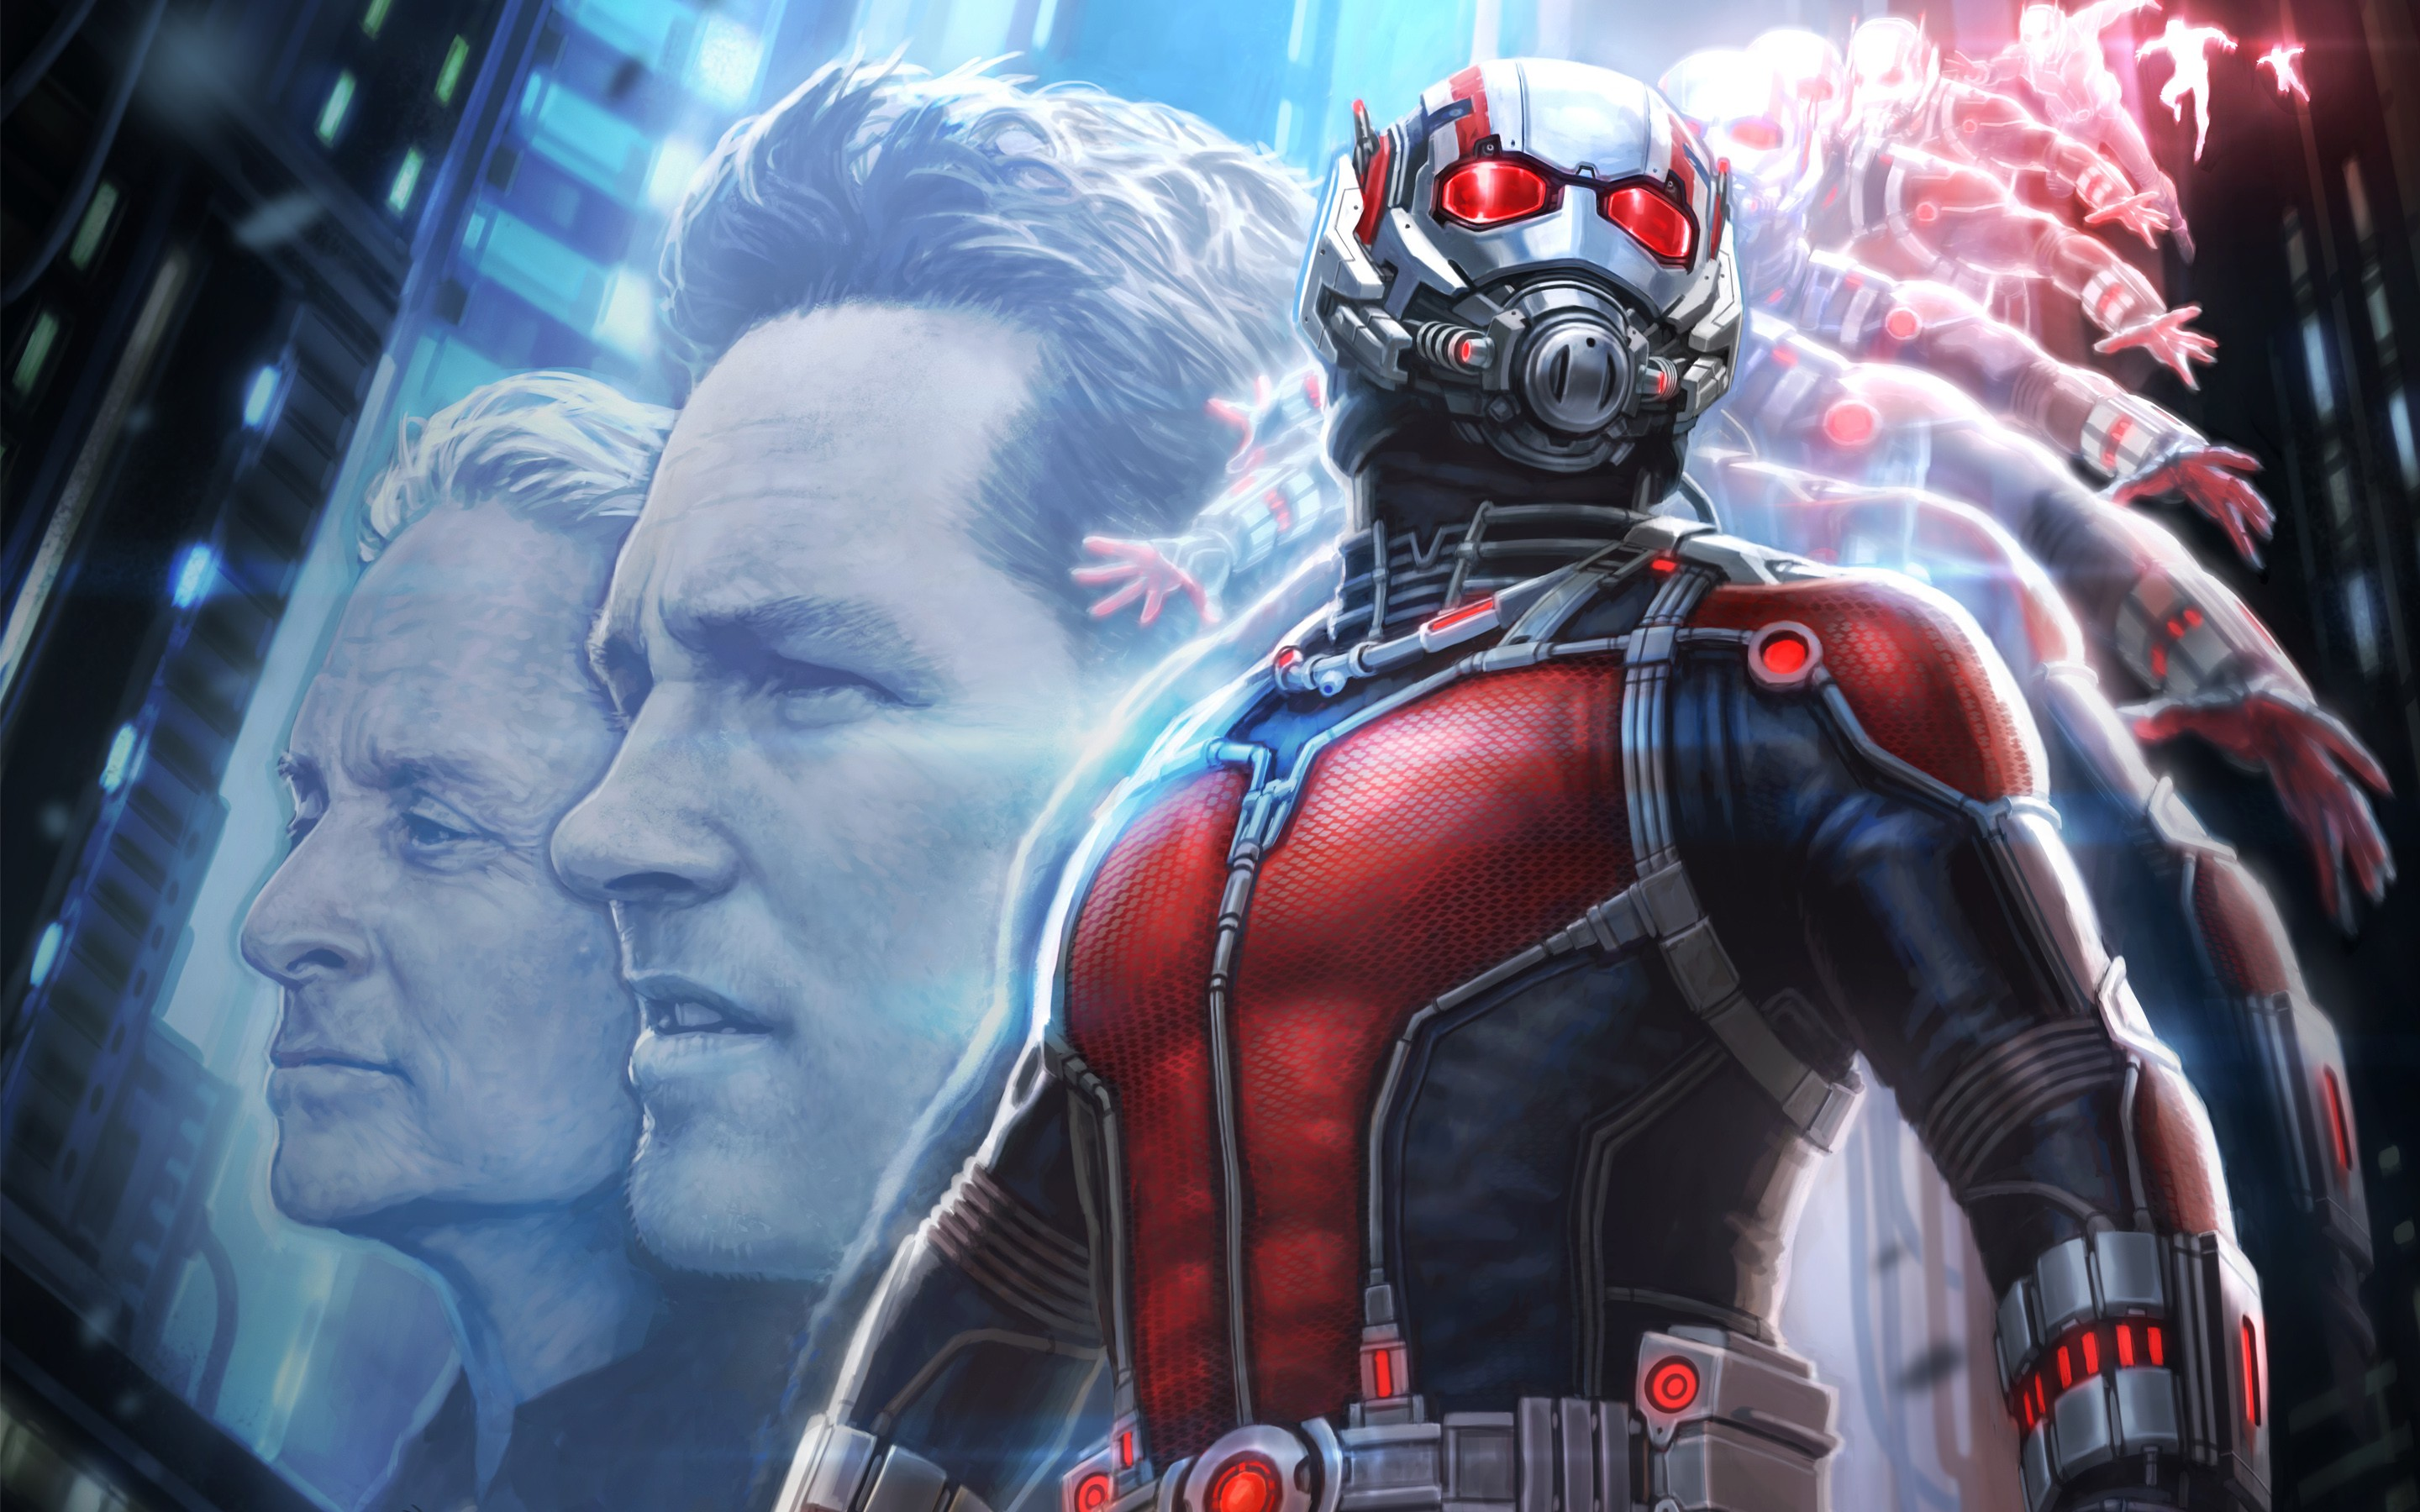 Ant Man Retina Movie Wallpaper: Ant Man Artwork Wide, HD Movies, 4k Wallpapers, Images